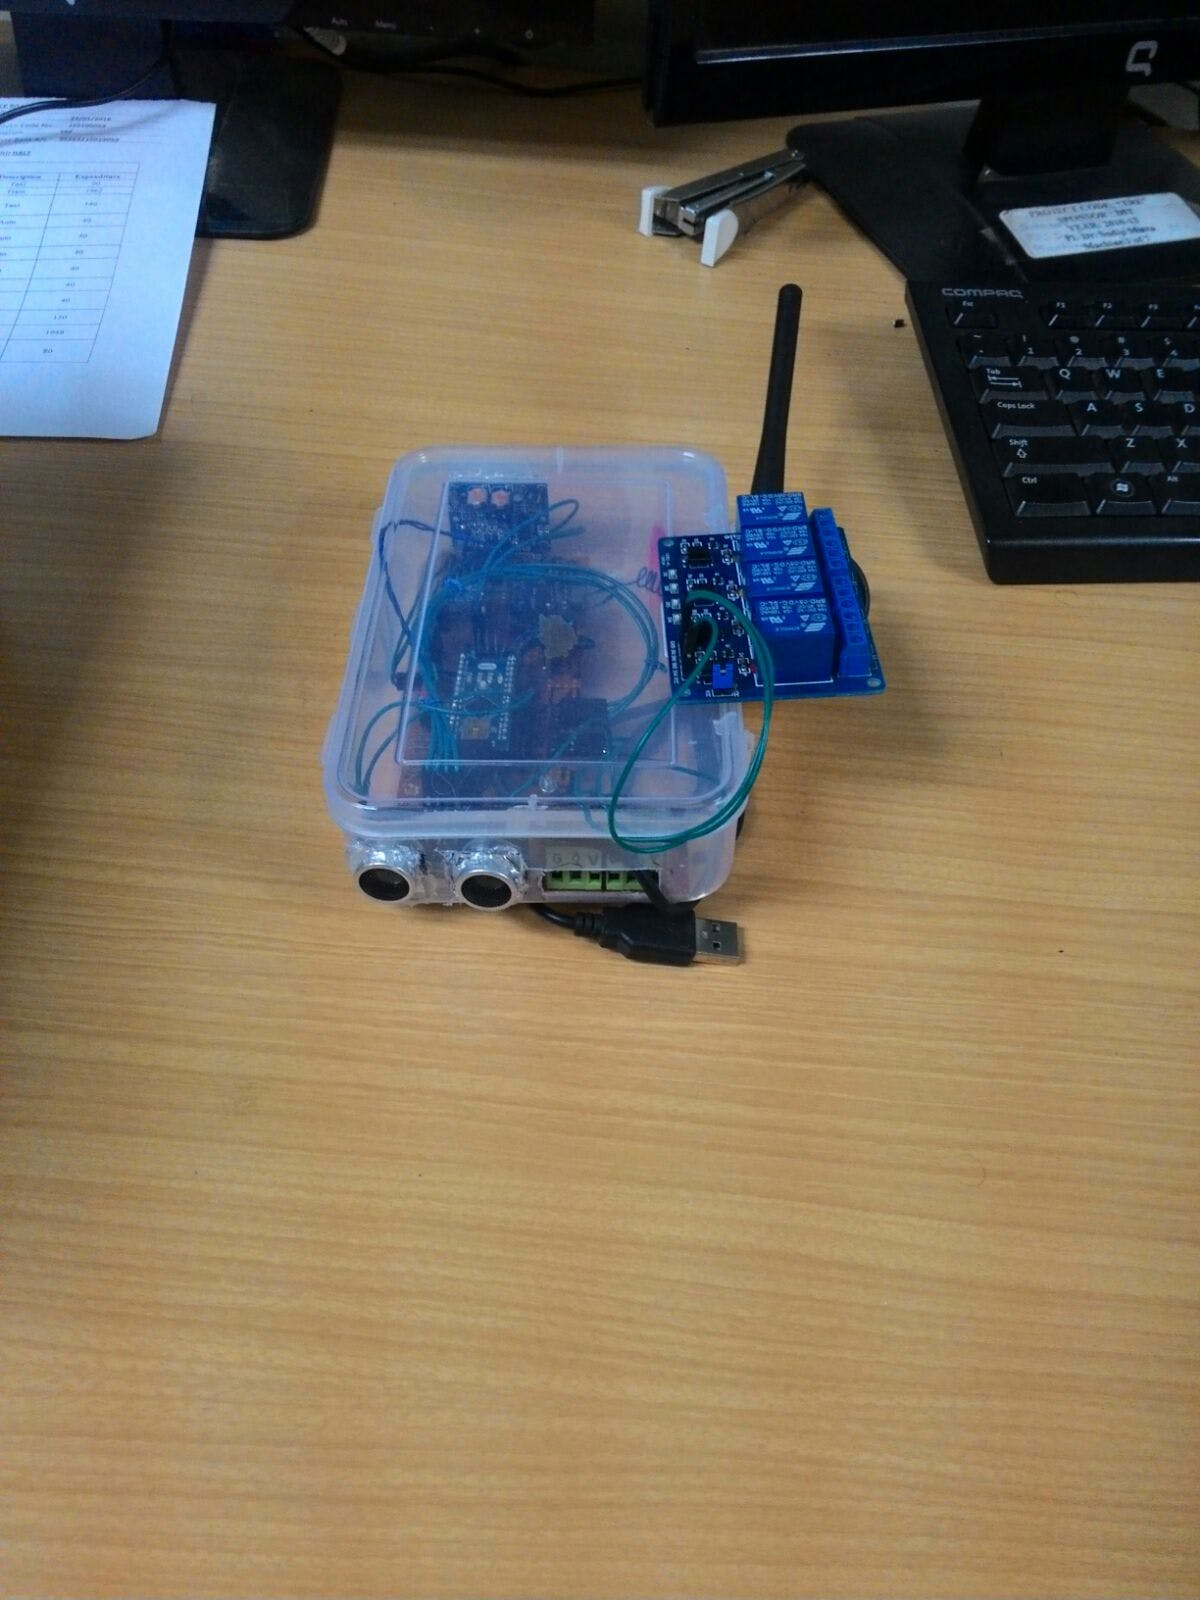 The ultrasonic distance sensor (at the bottom) doubles as a water level indicator